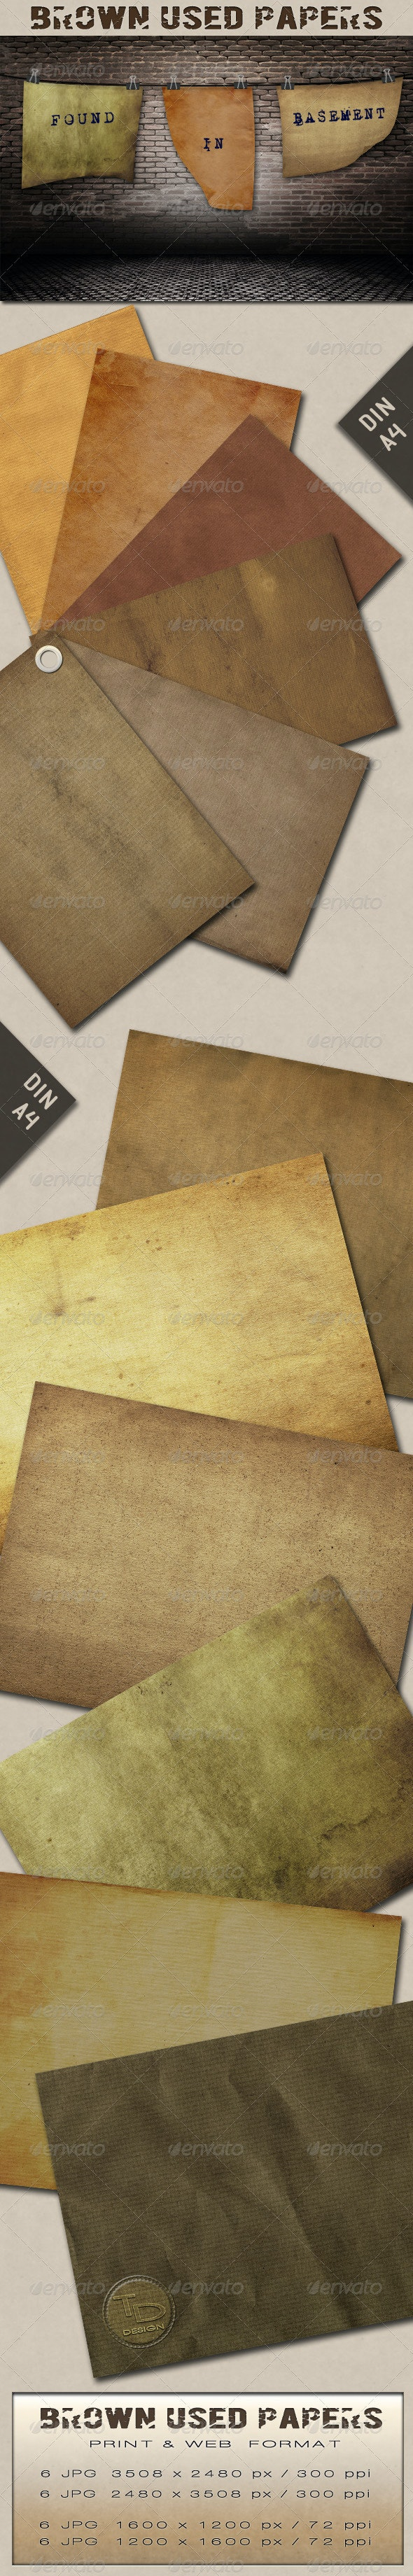 Brown Used Papers - Paper Textures